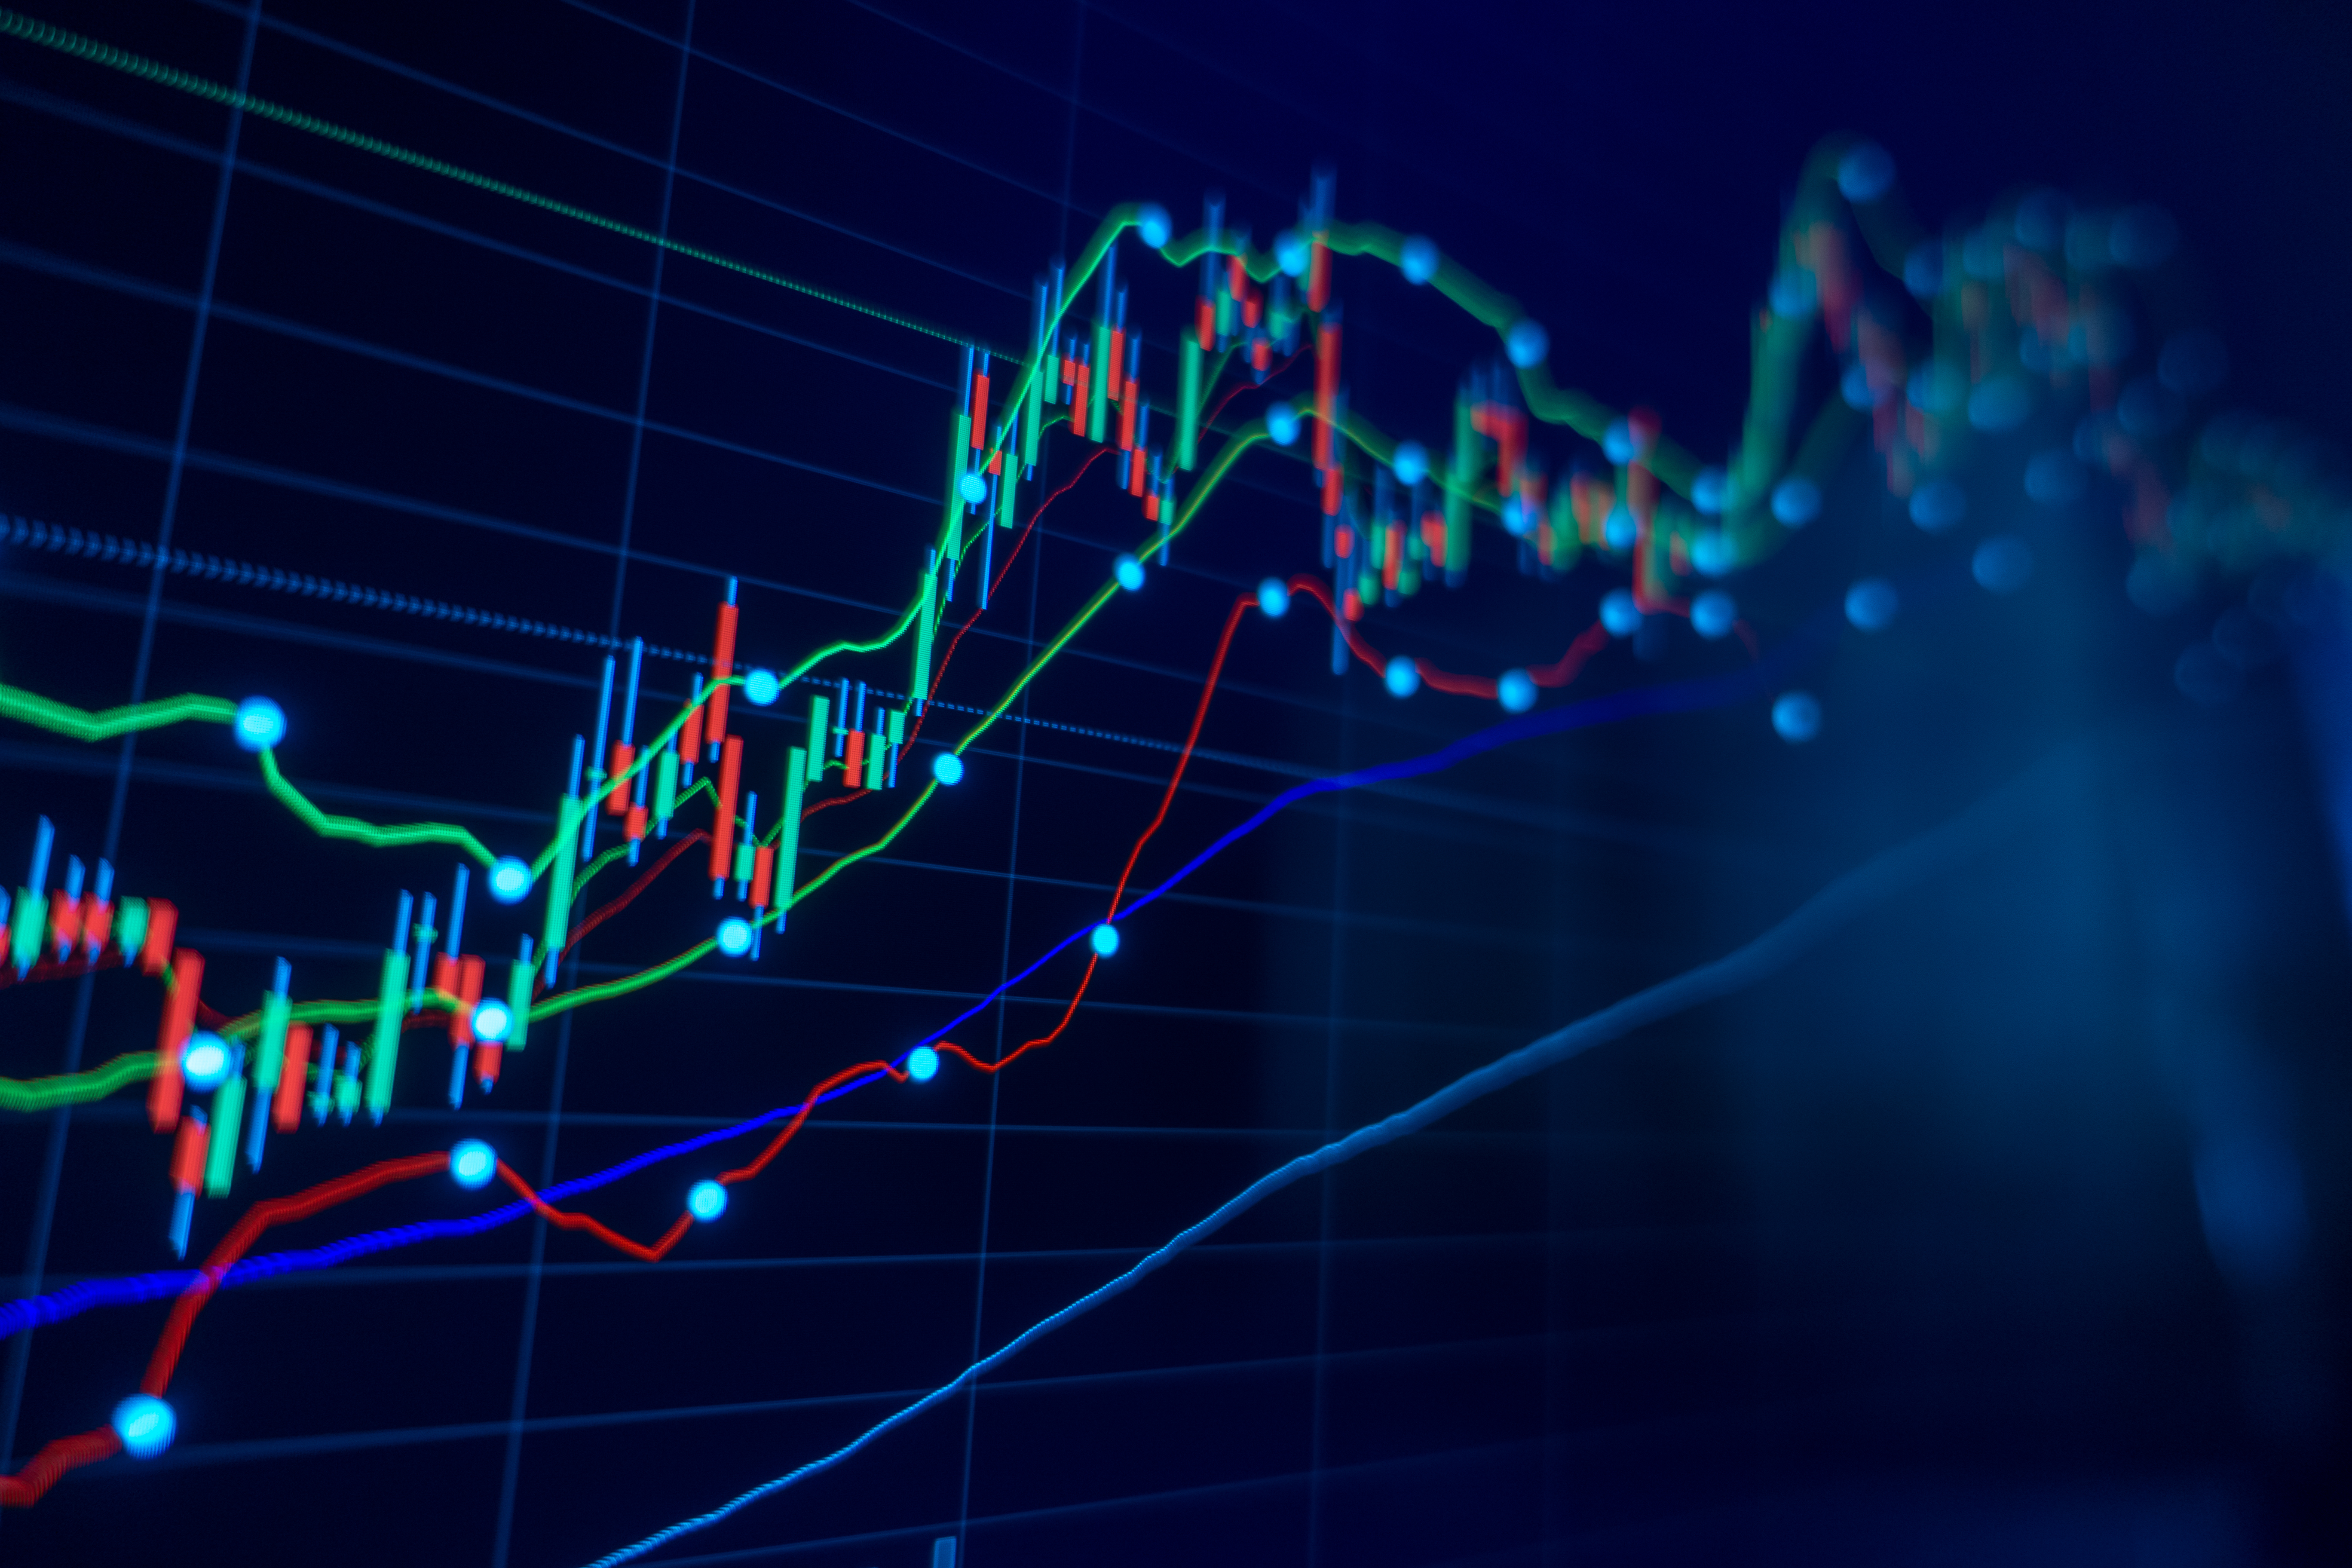 How have capital markets fared in 2020?